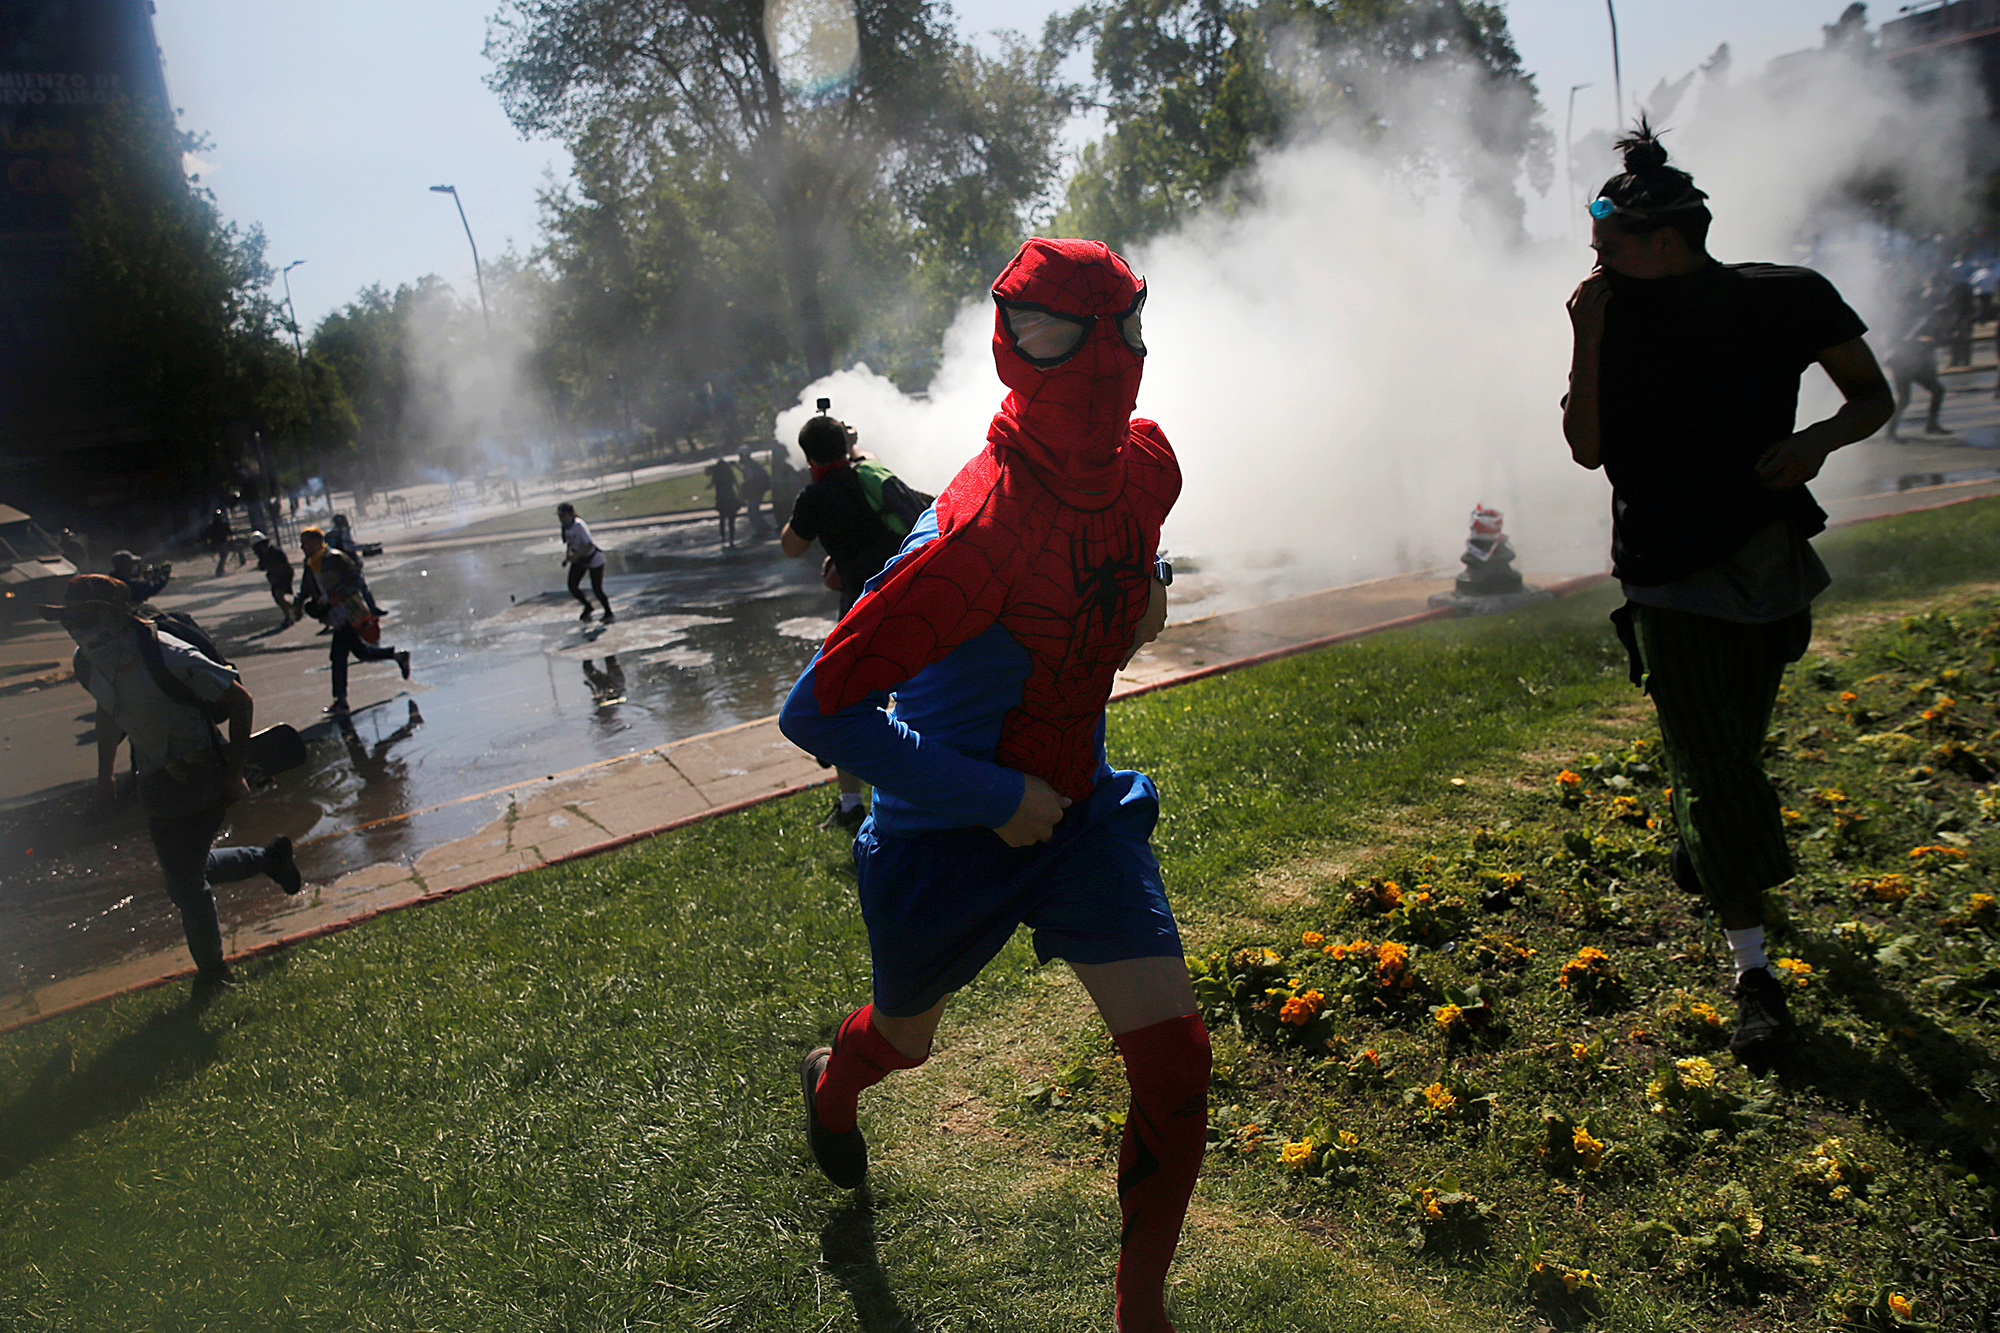 A demonstrator dressed as Spiderman runs from tear gas during a protest against Chile's state economic model in Santiago October 20, 2019.